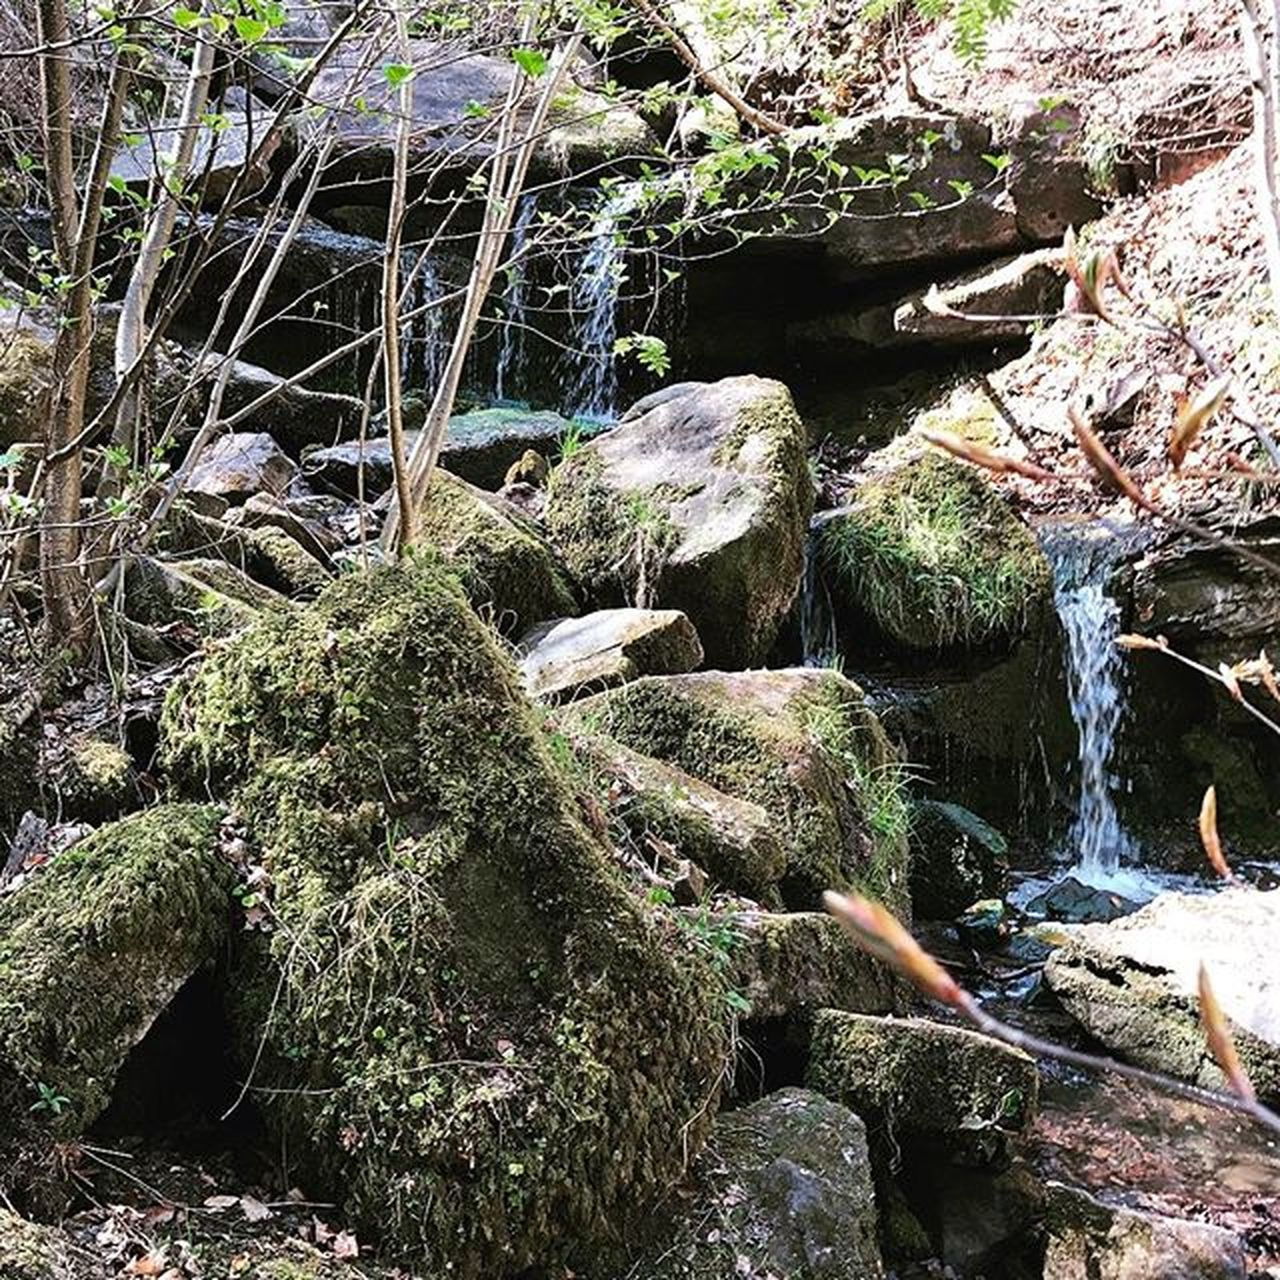 rock - object, nature, no people, outdoors, beauty in nature, waterfall, water, day, moss